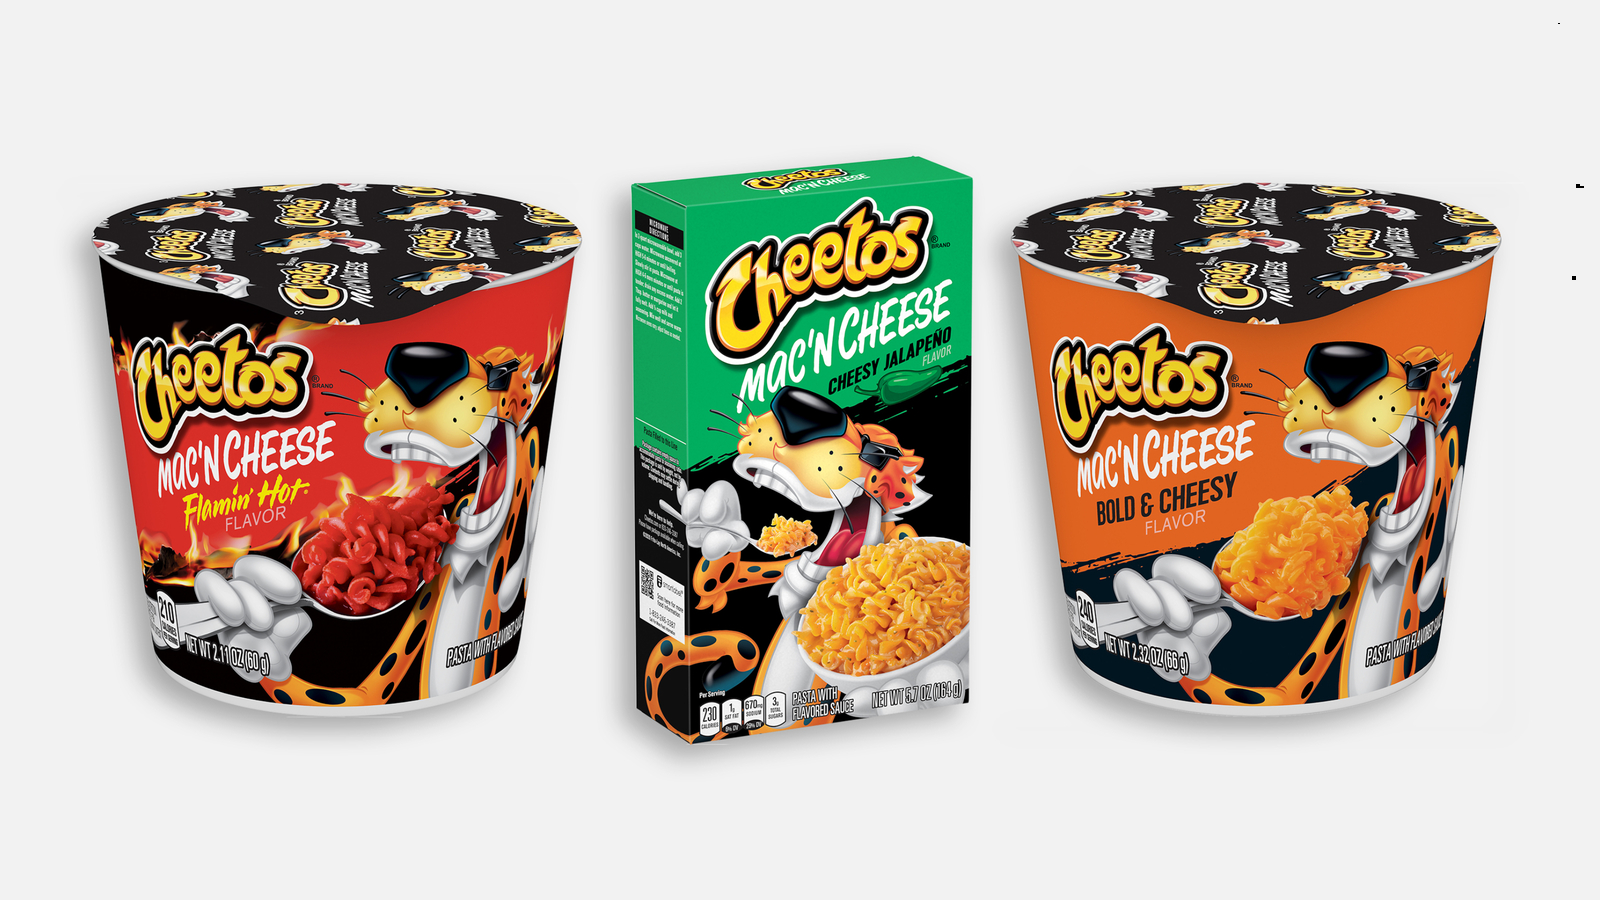 PepsiCo's new Mac & Cheese product is made with Cheetos